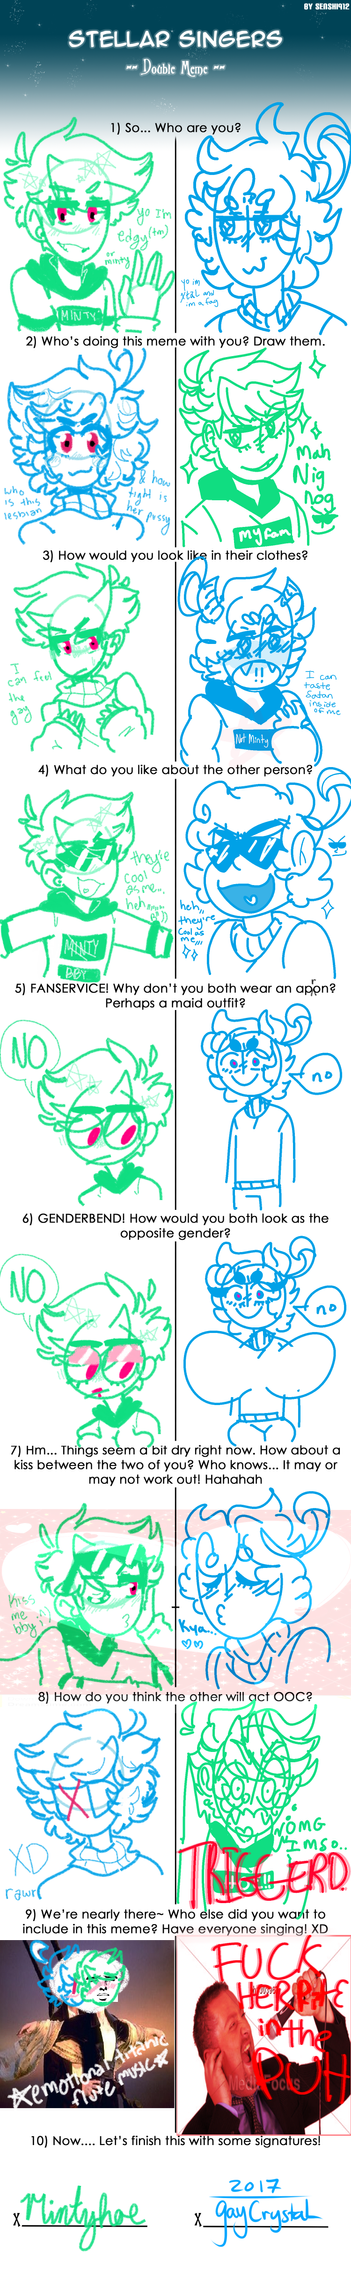 doubl meme with a fagot by gaycrystal